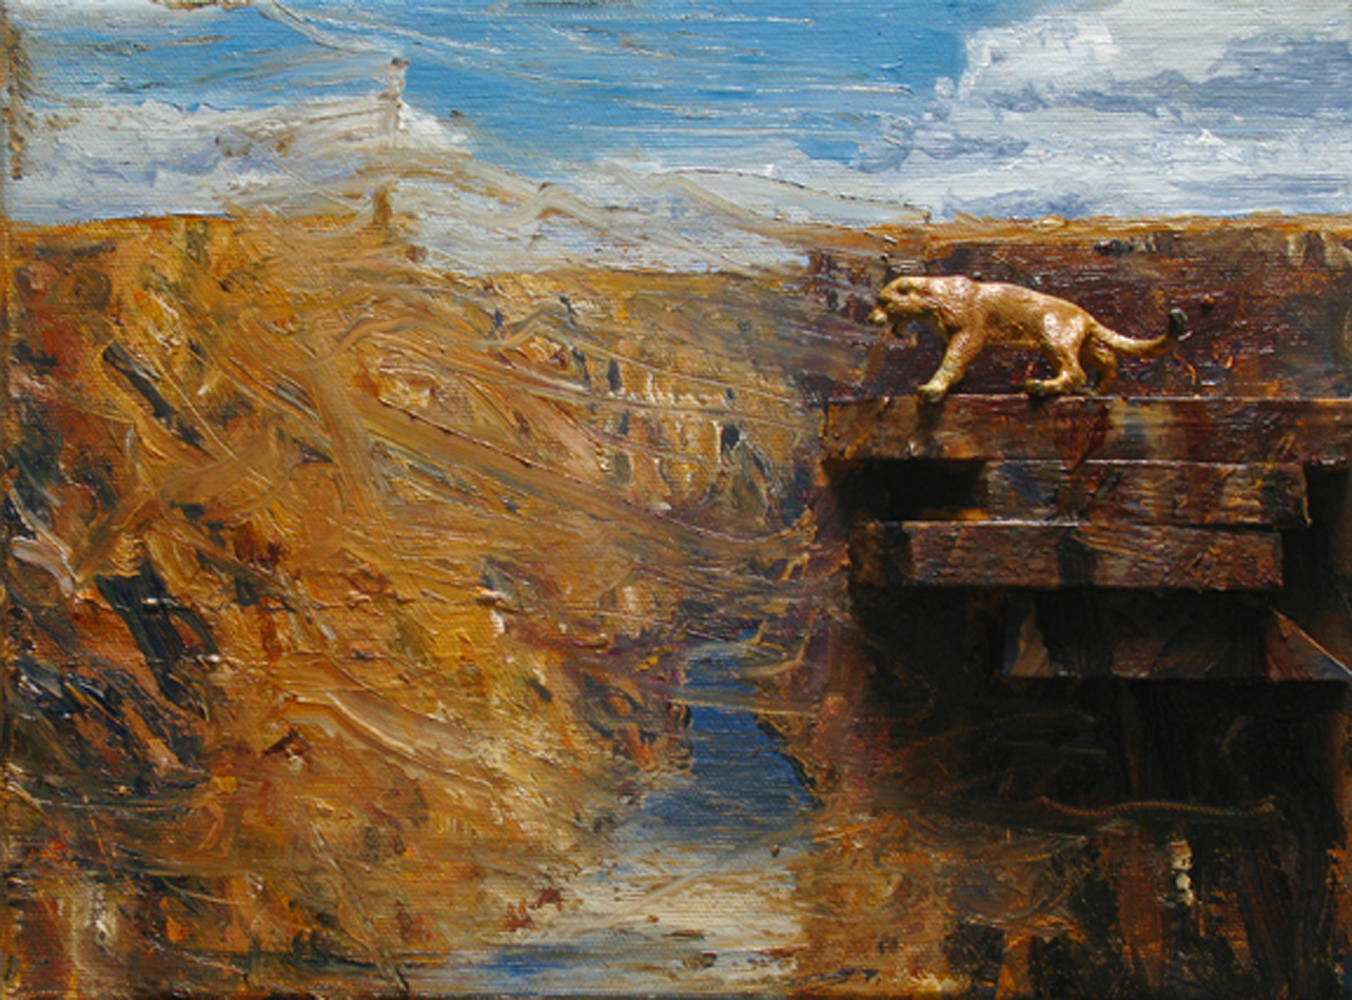 Oil painting Cougar, 2010 by David  Maxim